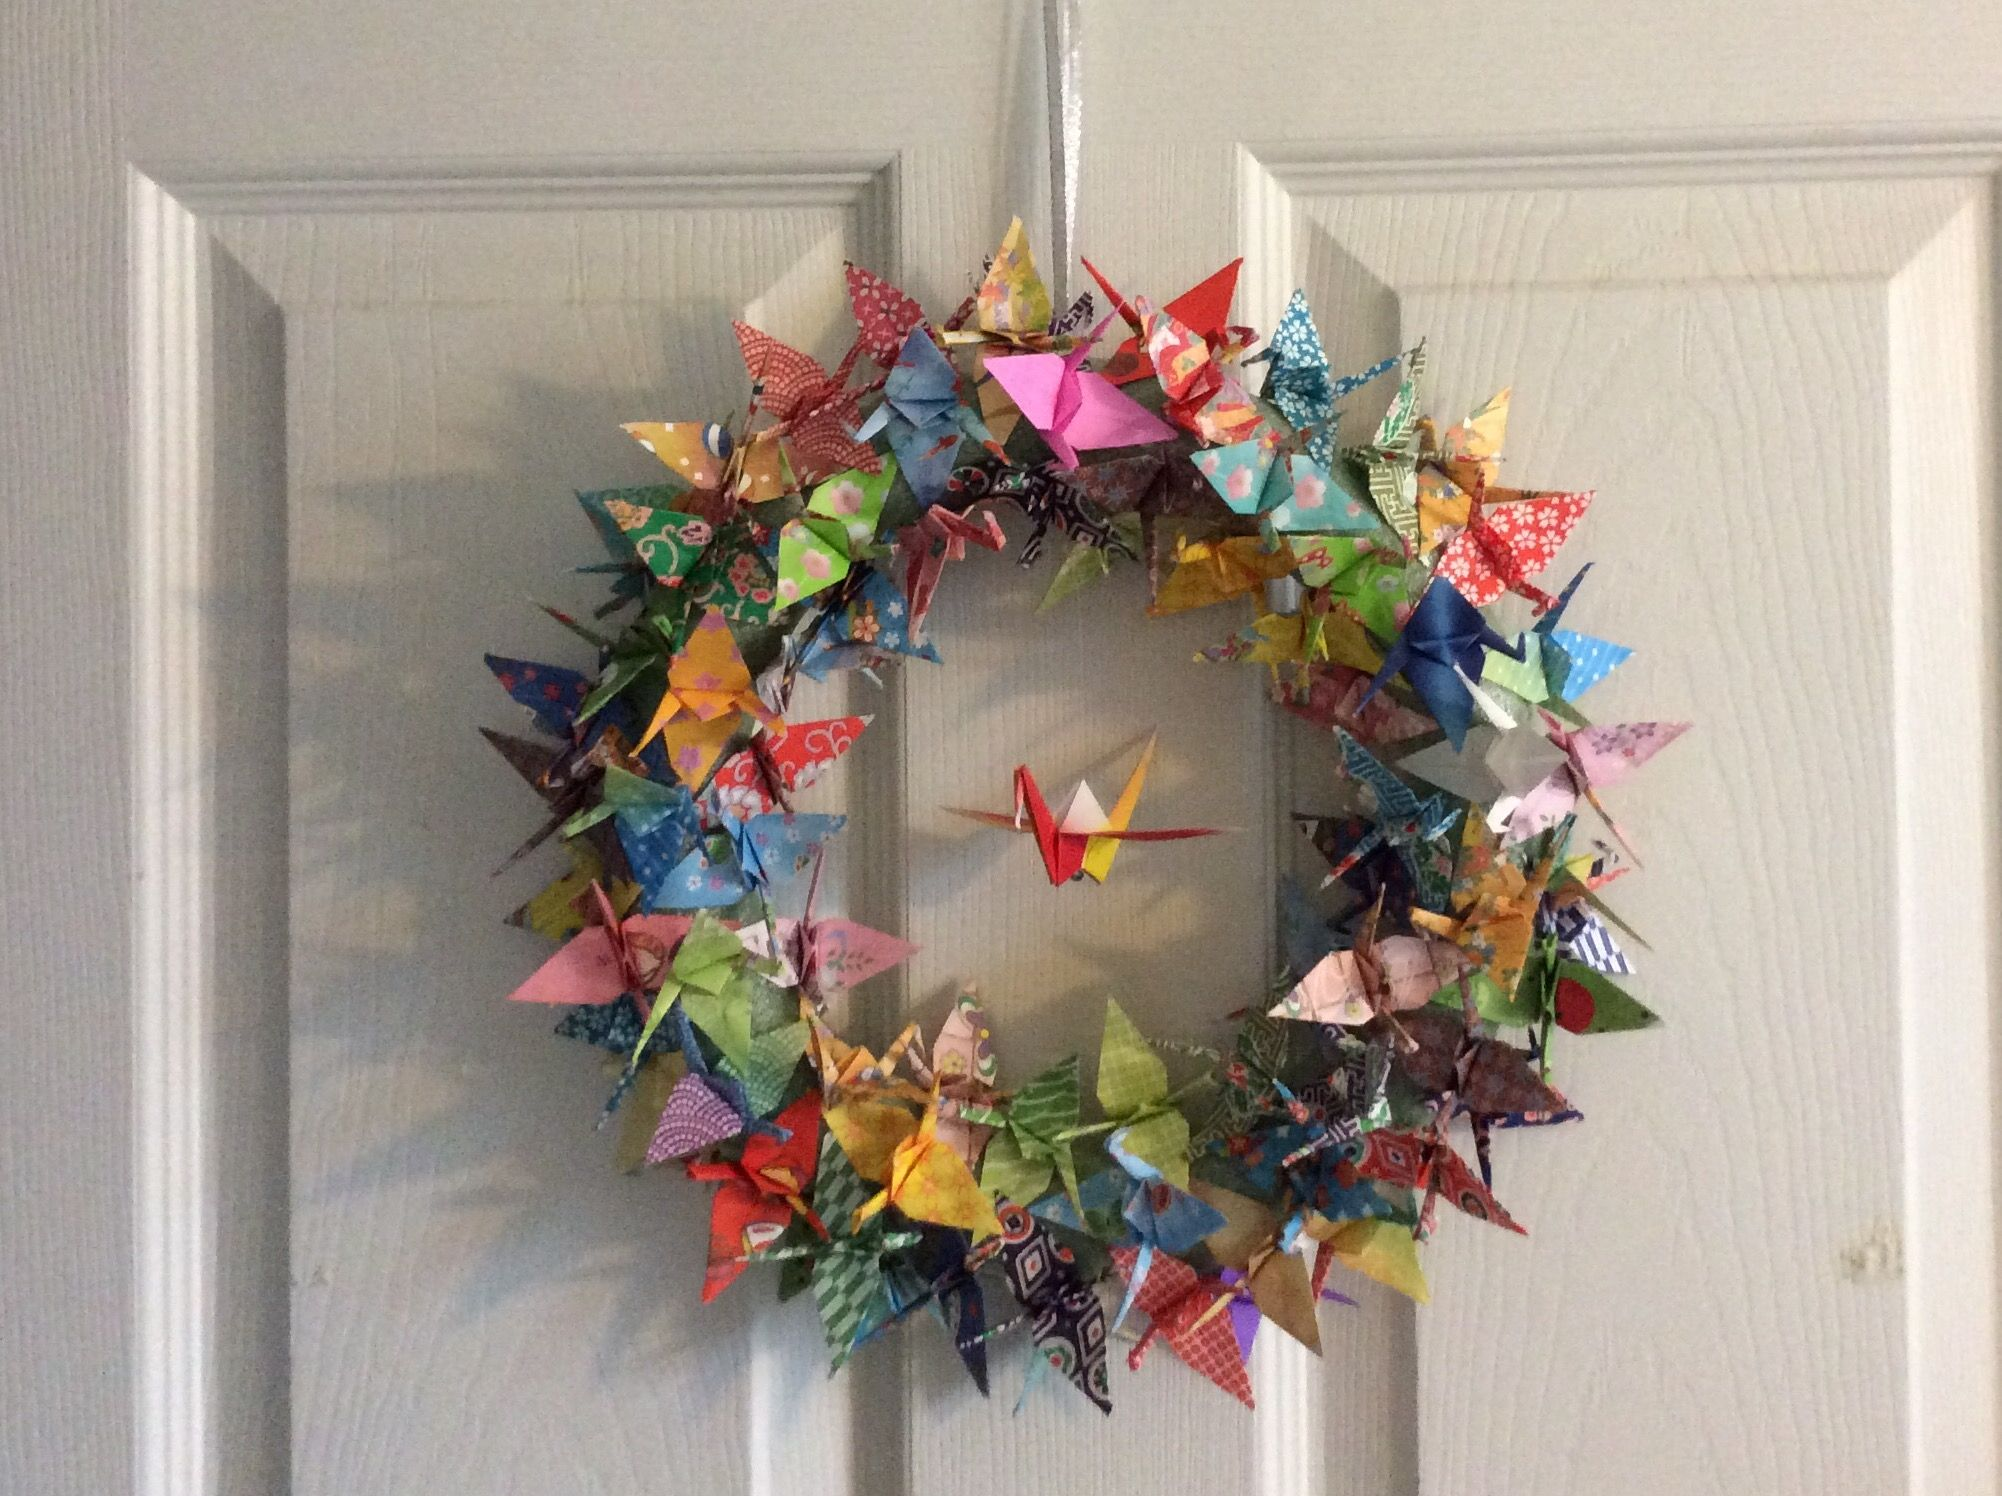 Origami Crane Wreath- Why havent I done this yet? | Origami | Christmas origami, Origami ... - photo#50